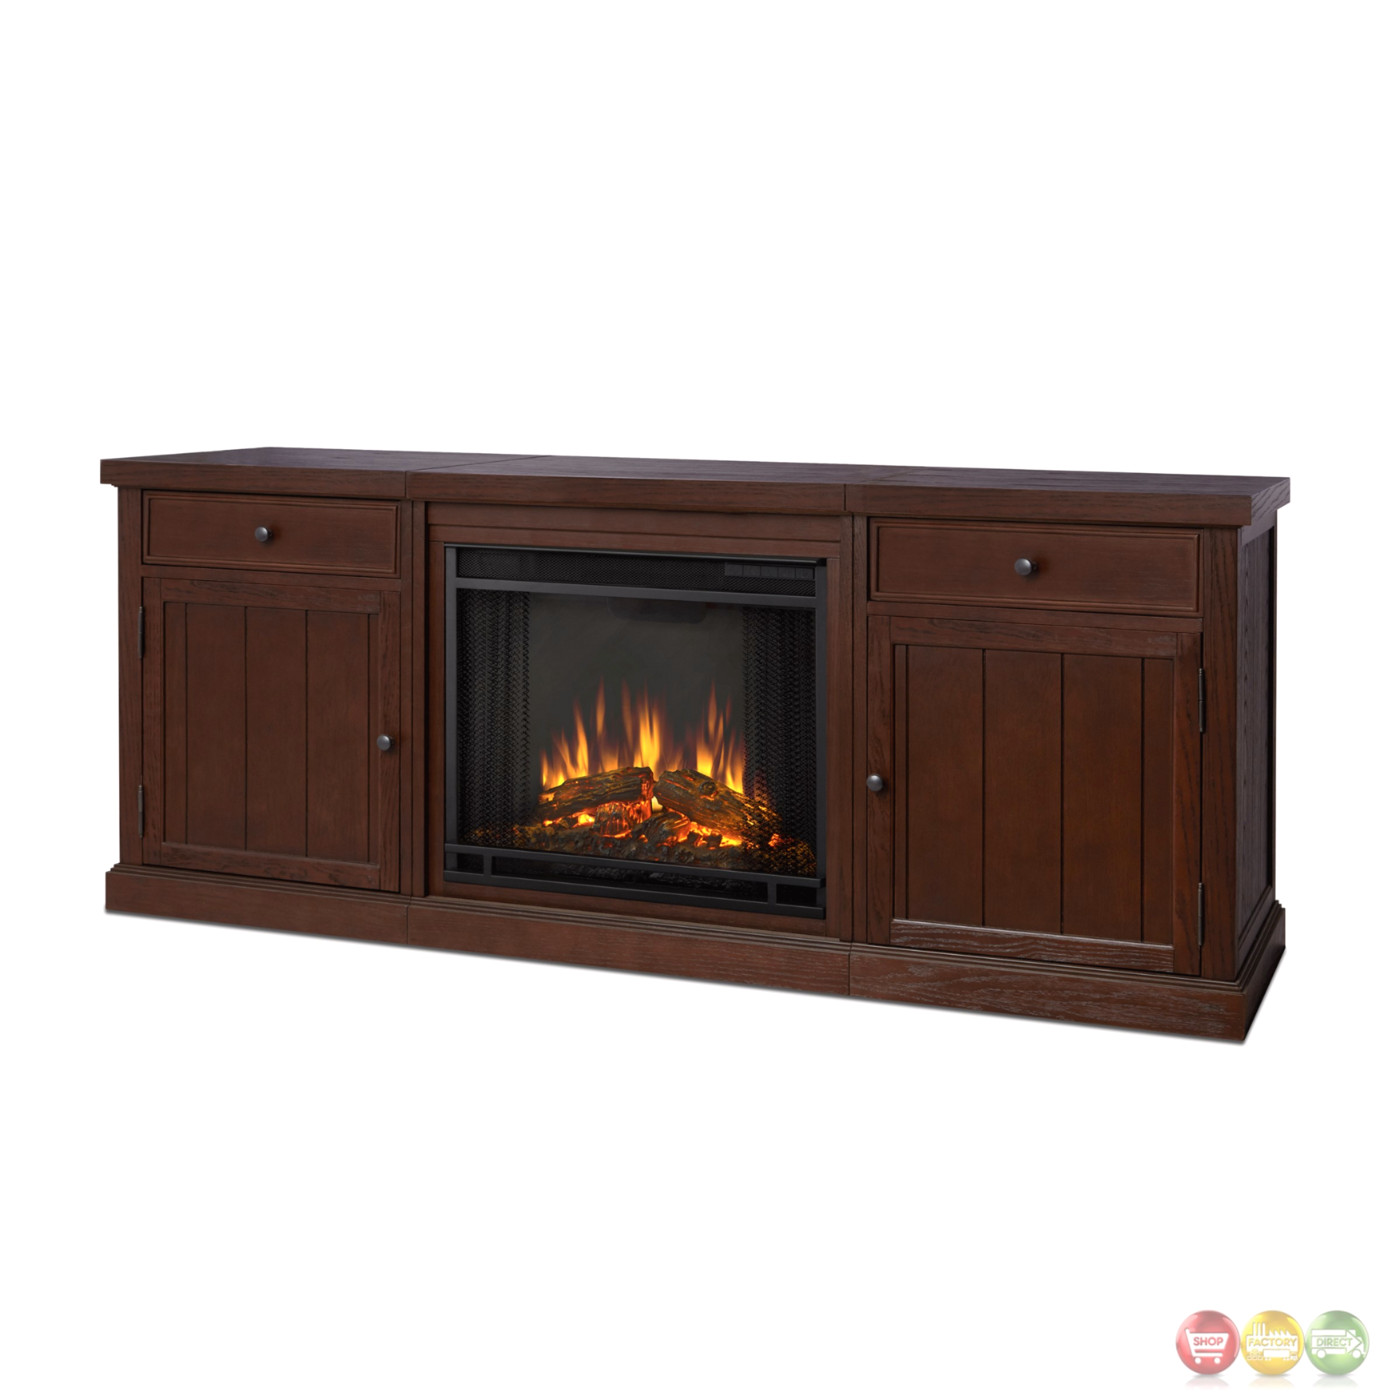 Cassidy Entertainment Center Electric Fireplace In Chestnut Oak 69x28